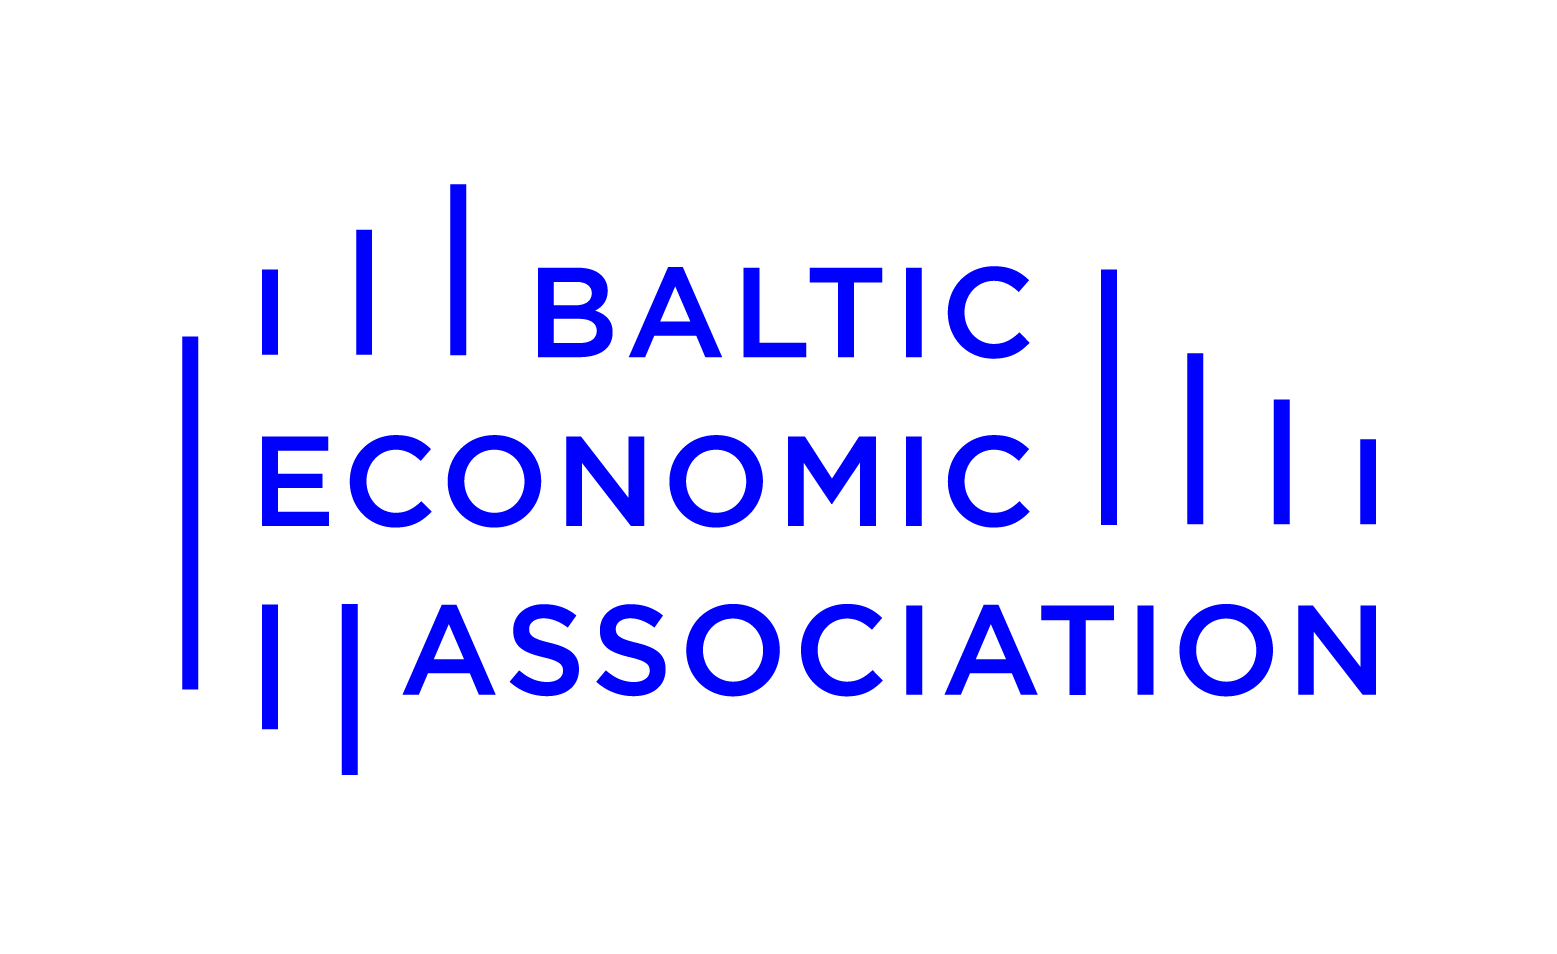 The Baltic Economic Association